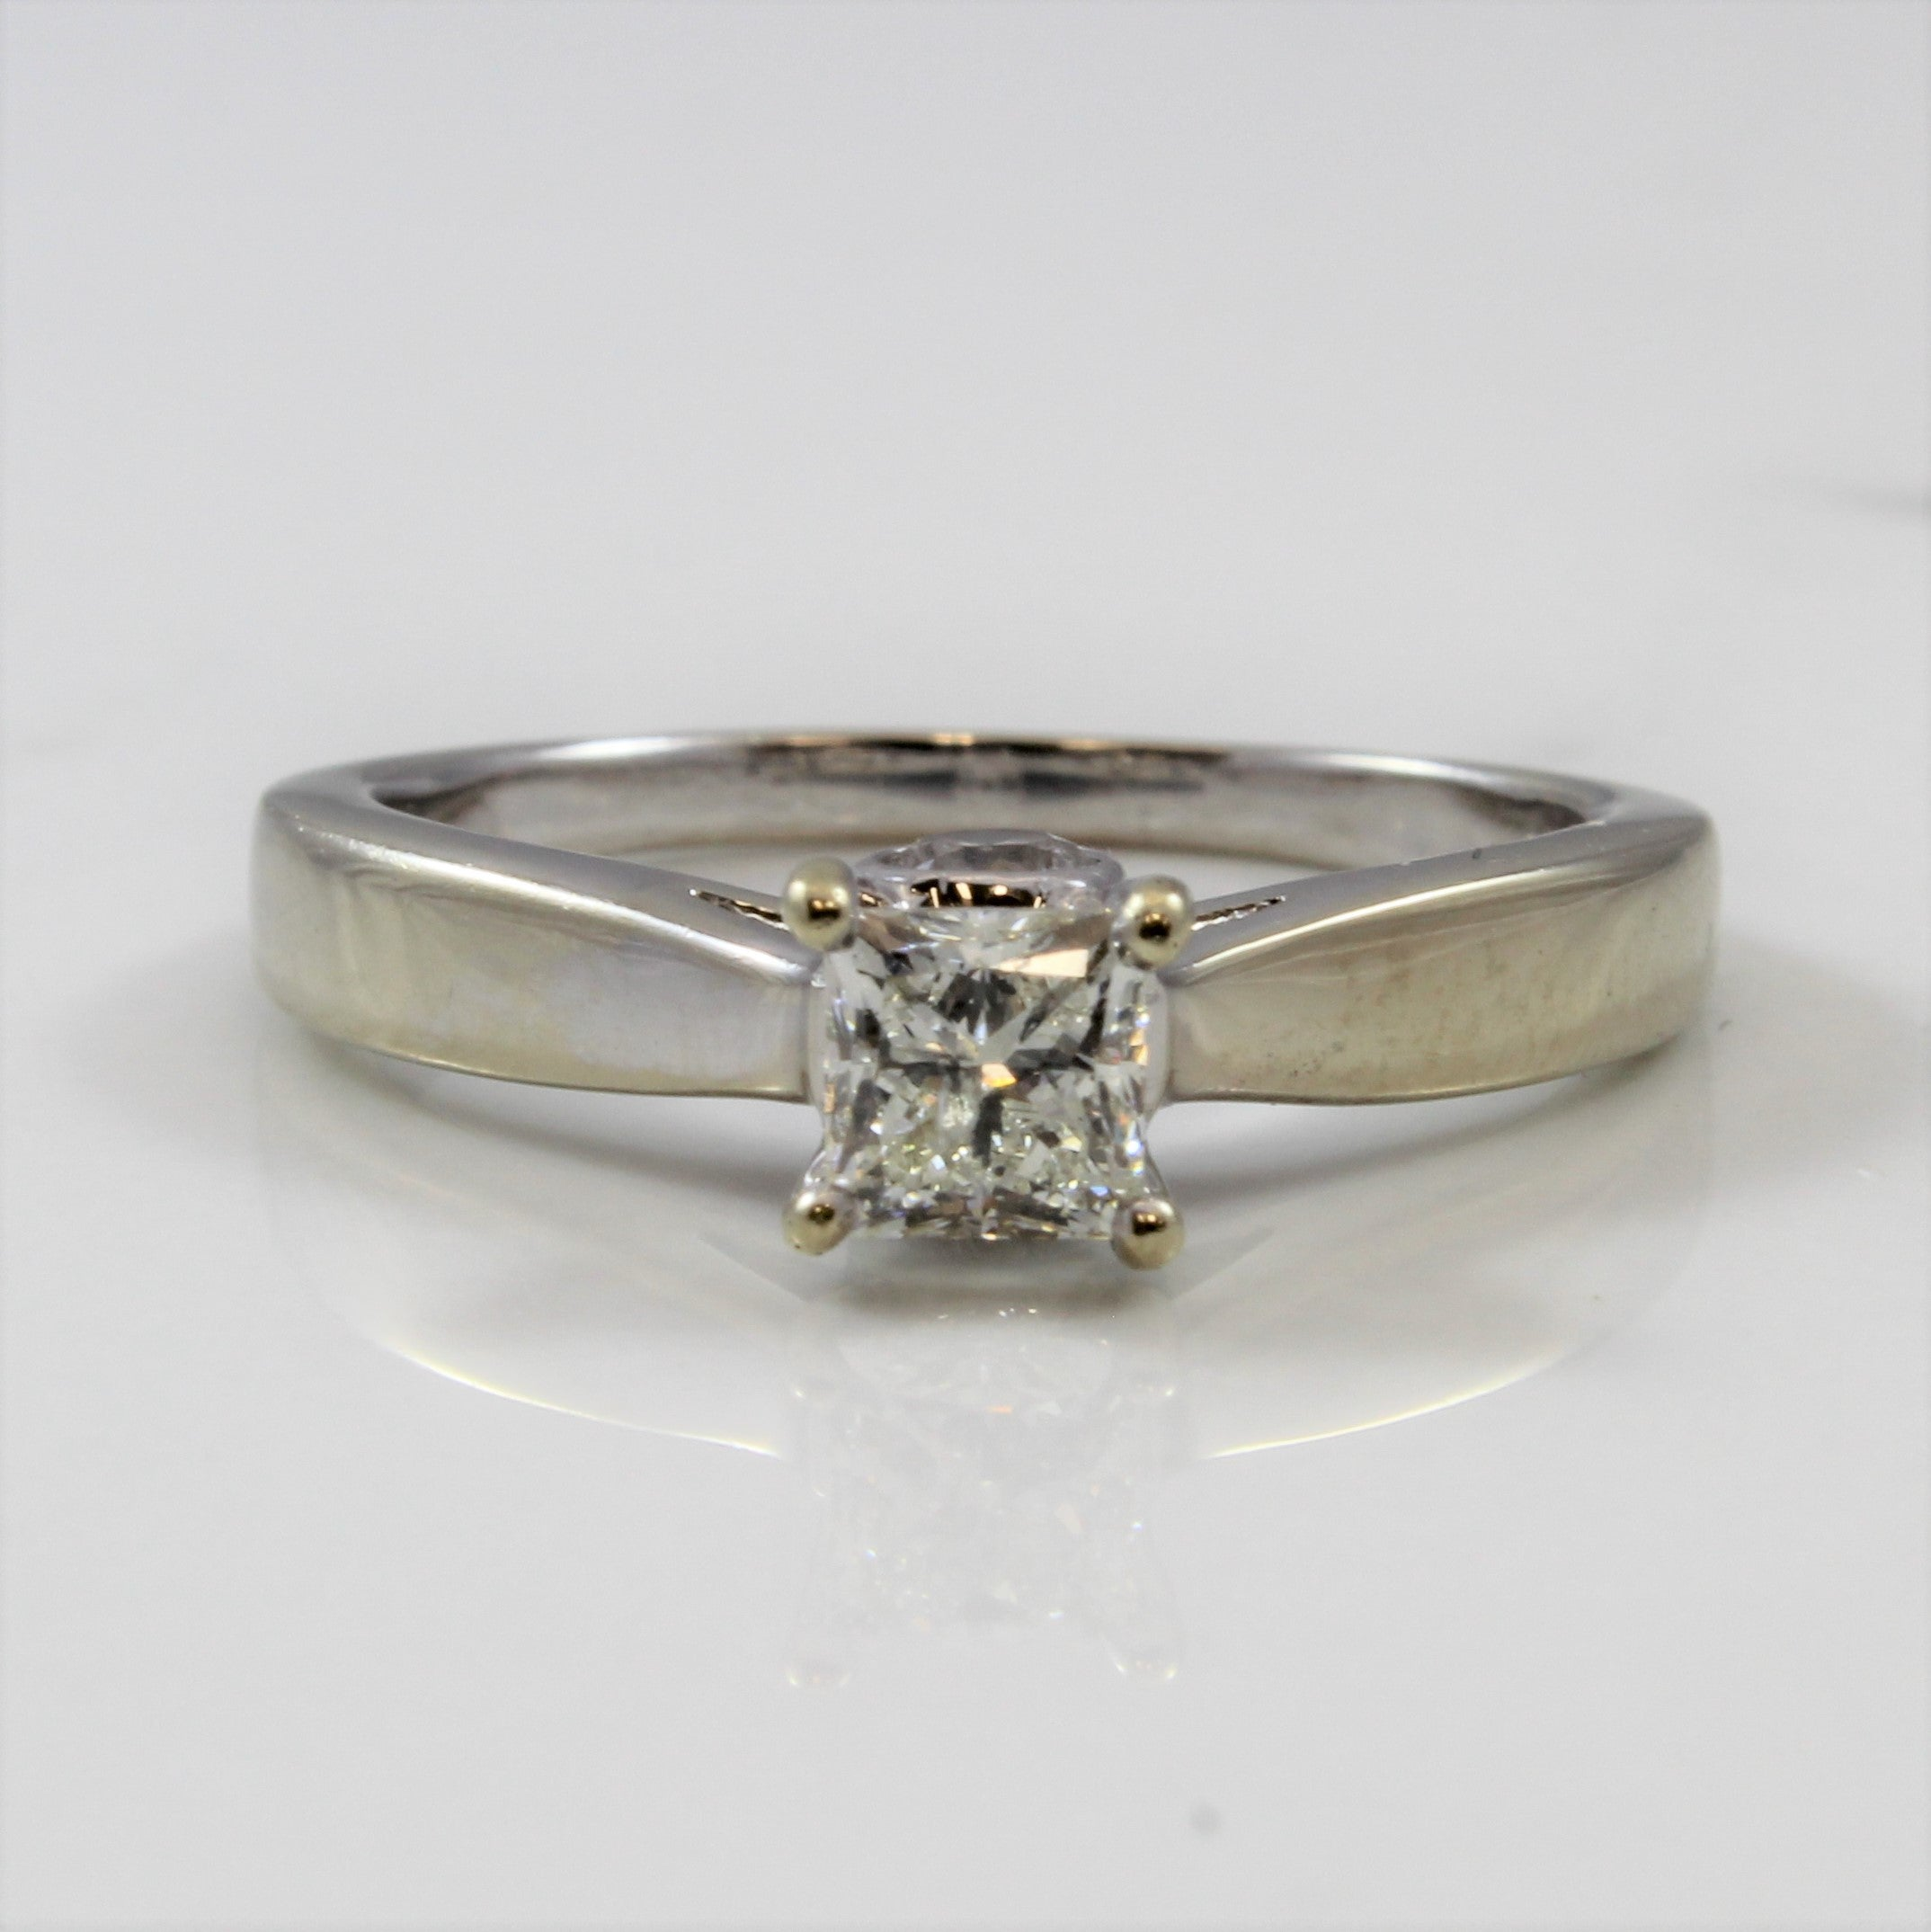 Diamond Detailed Profile Engagement Ring | 1.00 ctw | SZ 9.25 |